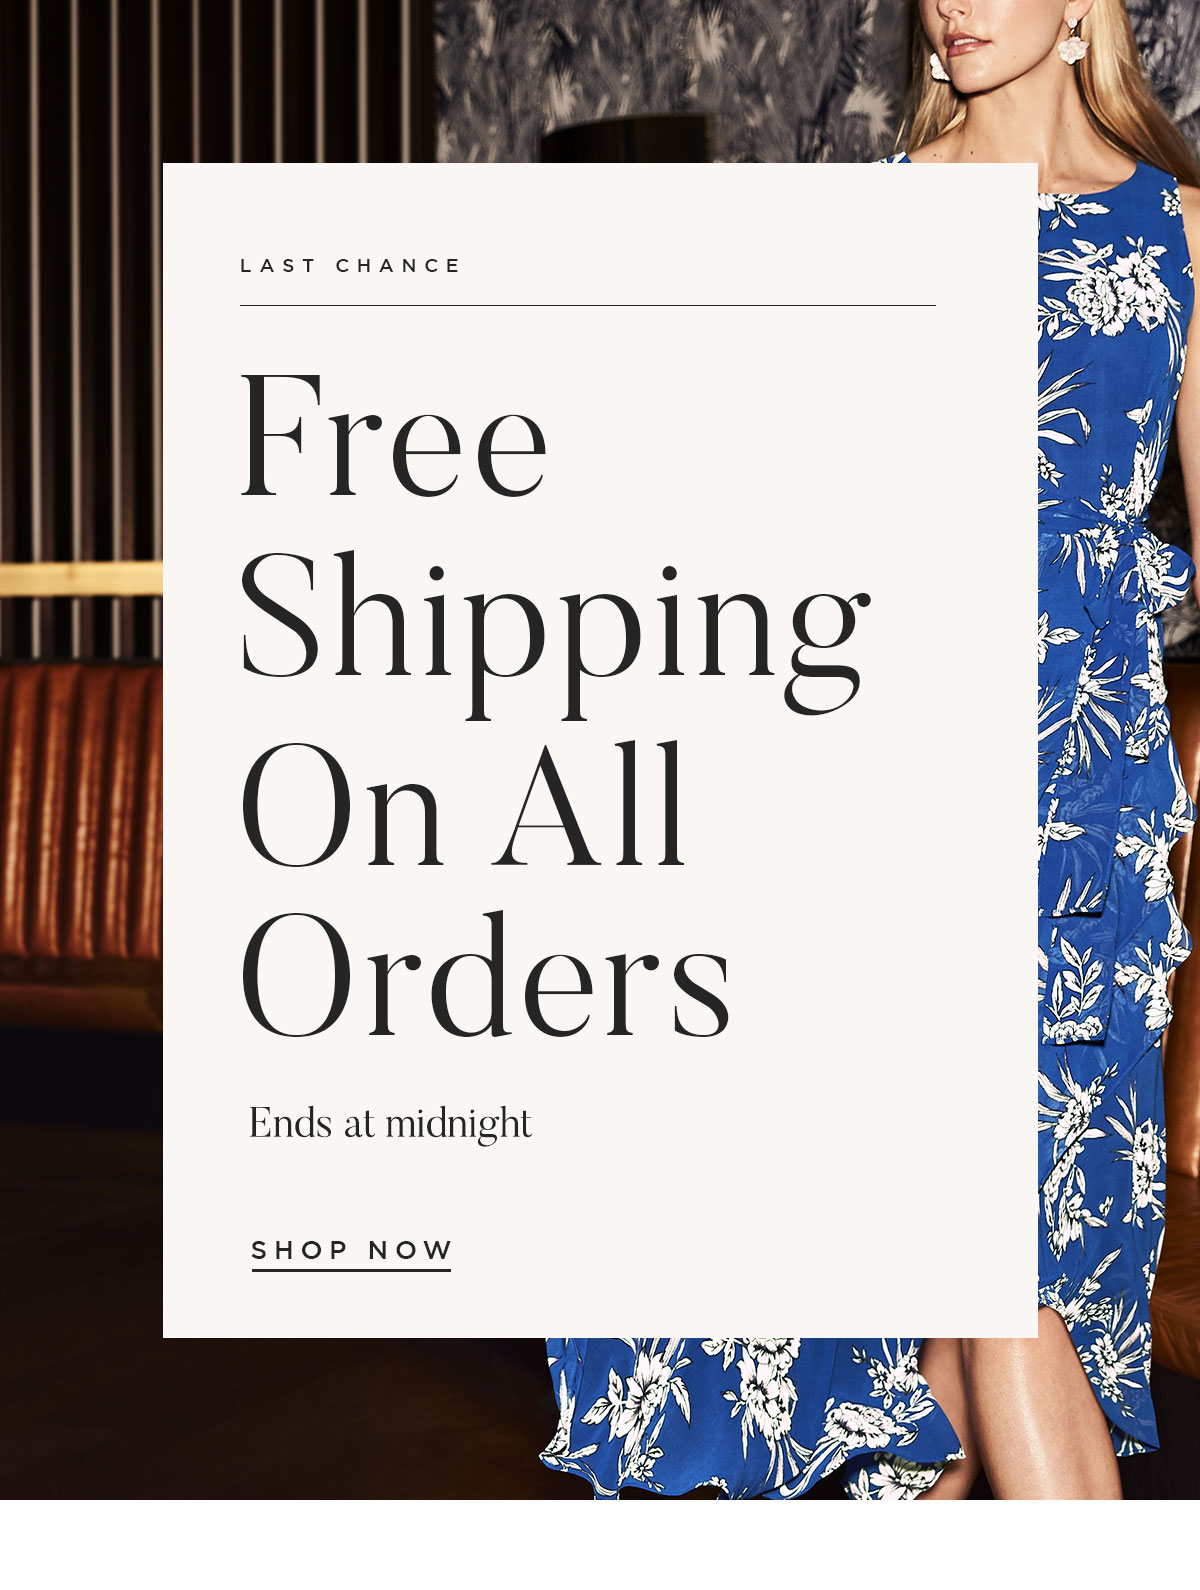 Free shipping on all orders ends at midnight